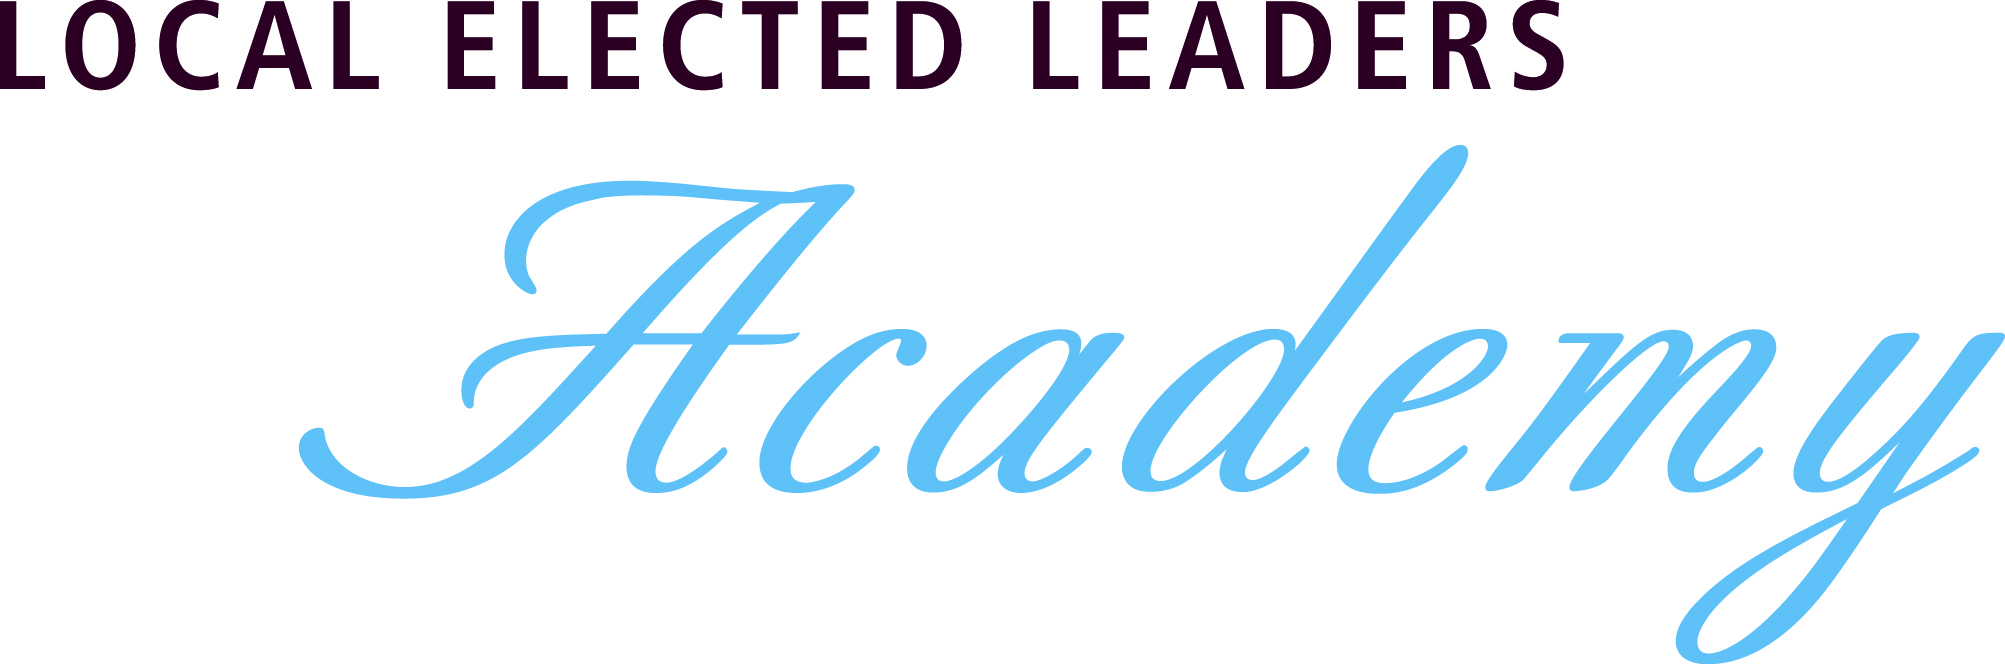 Local Elected Leaders Academy logo